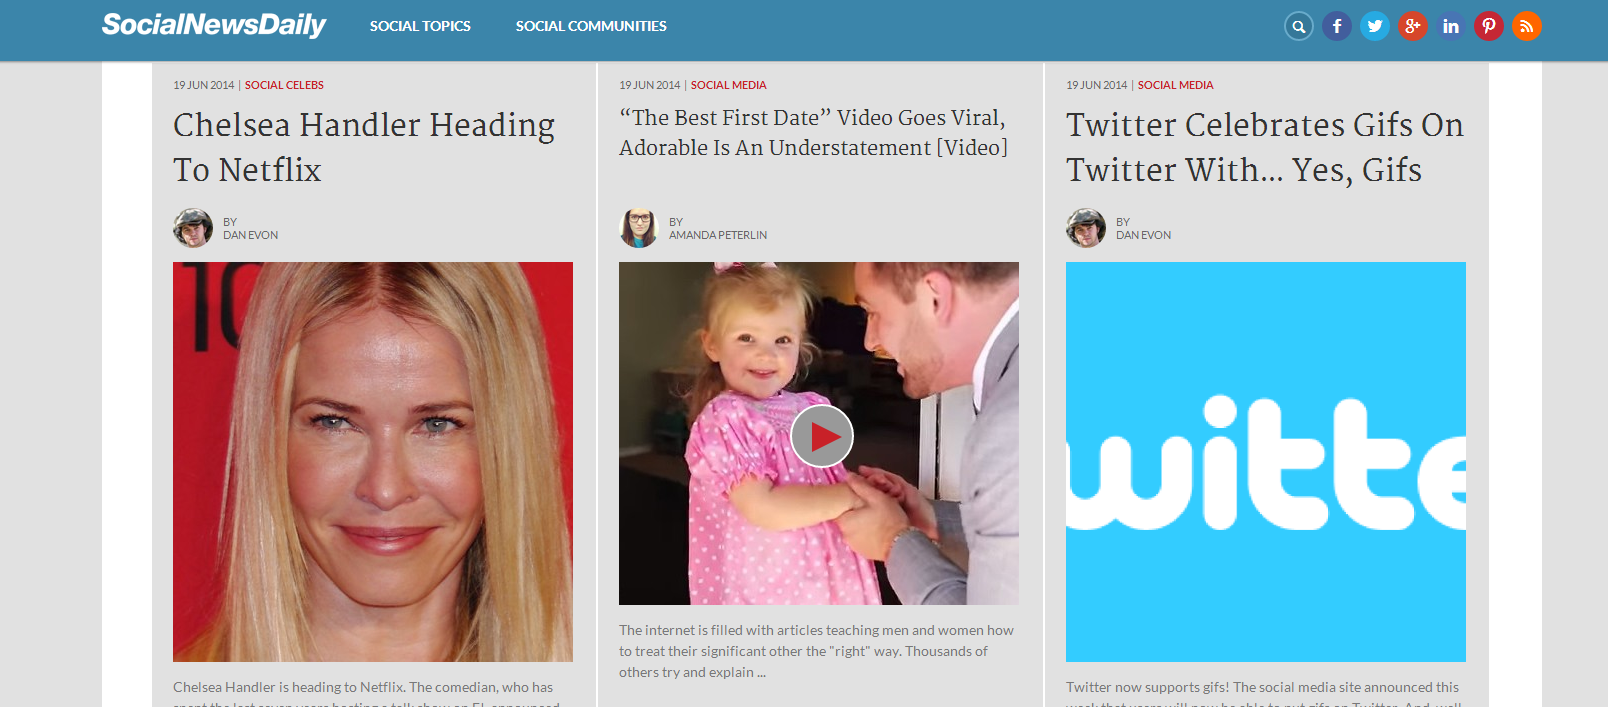 Social News Daily - Examining And Reporting On The World Of Social Media